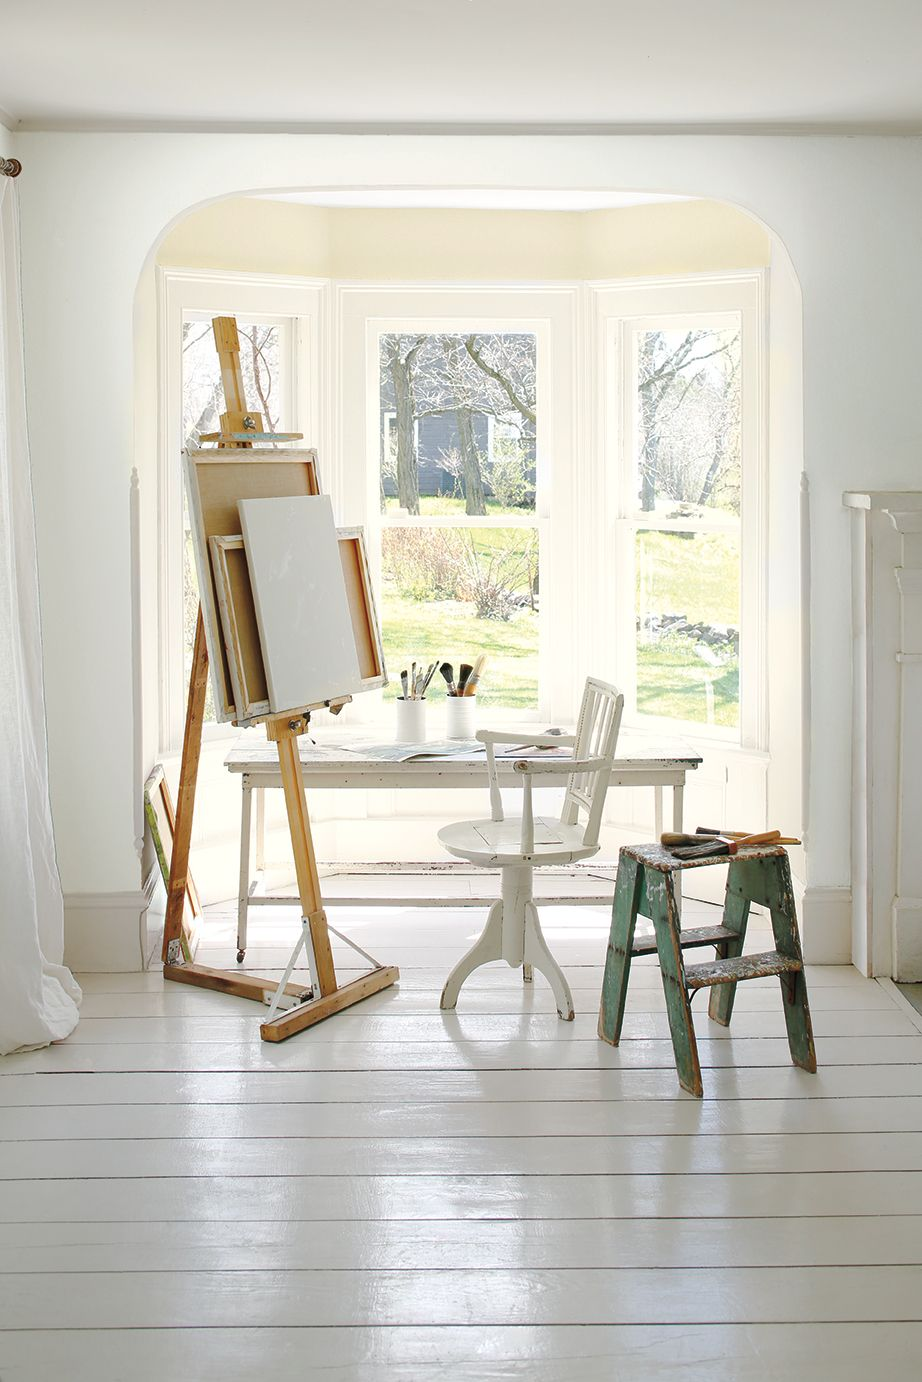 Benjamin Moore's 2016 Colour of the Year? Simply White